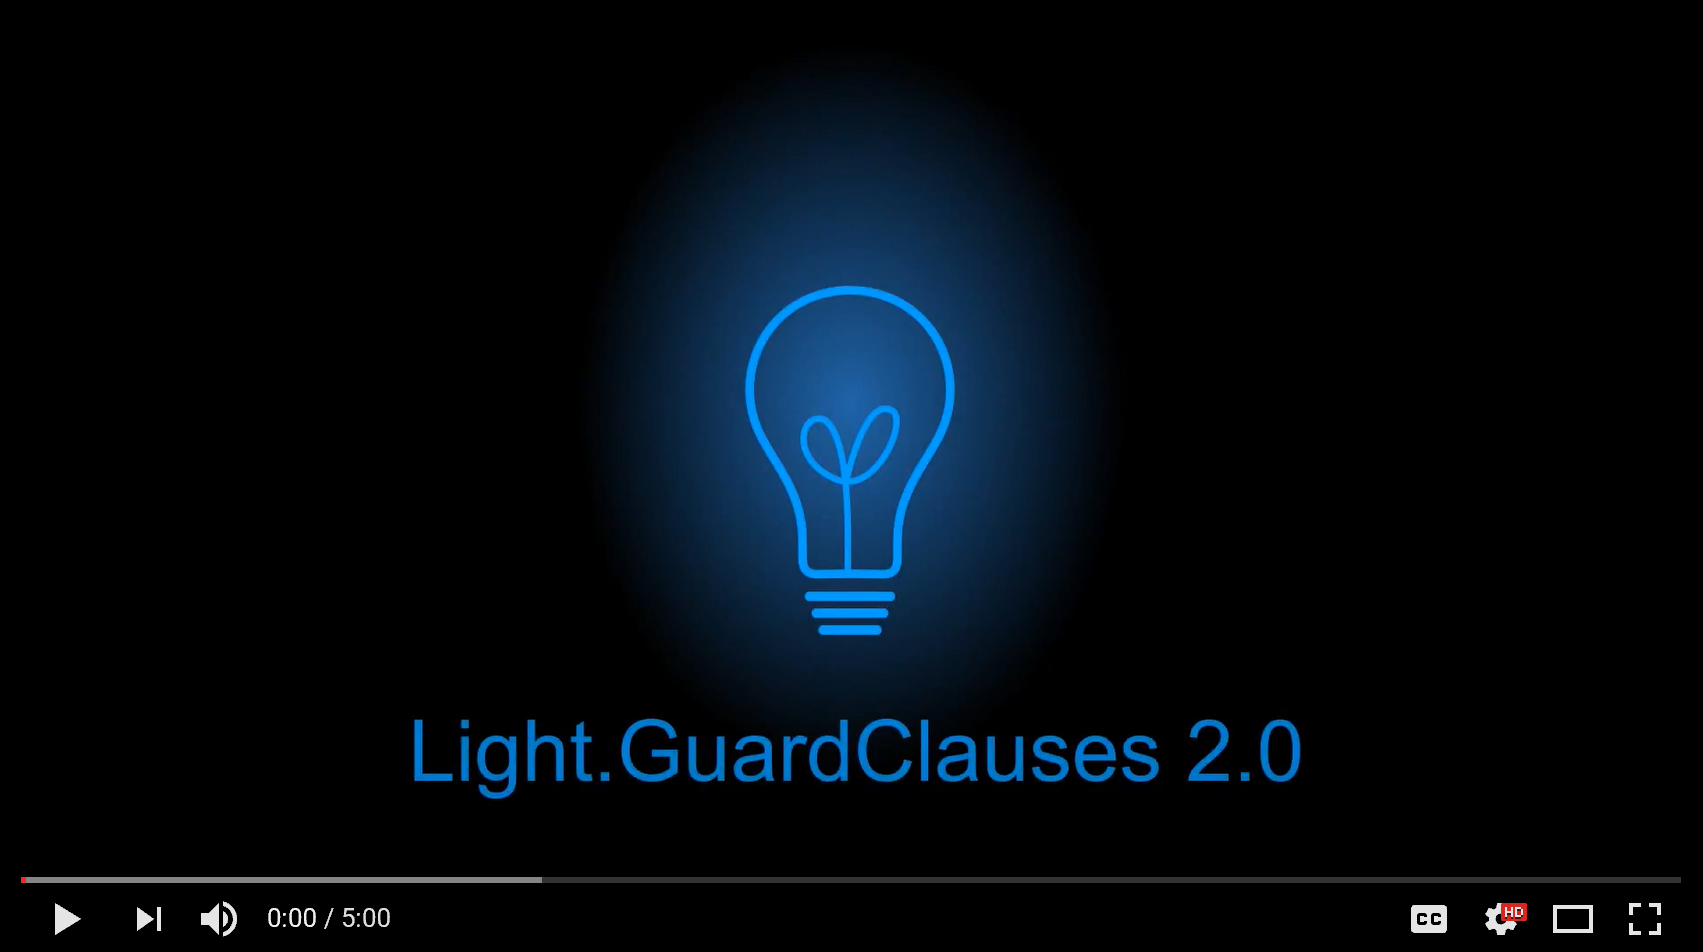 Video introduction to Light.GuardClauses